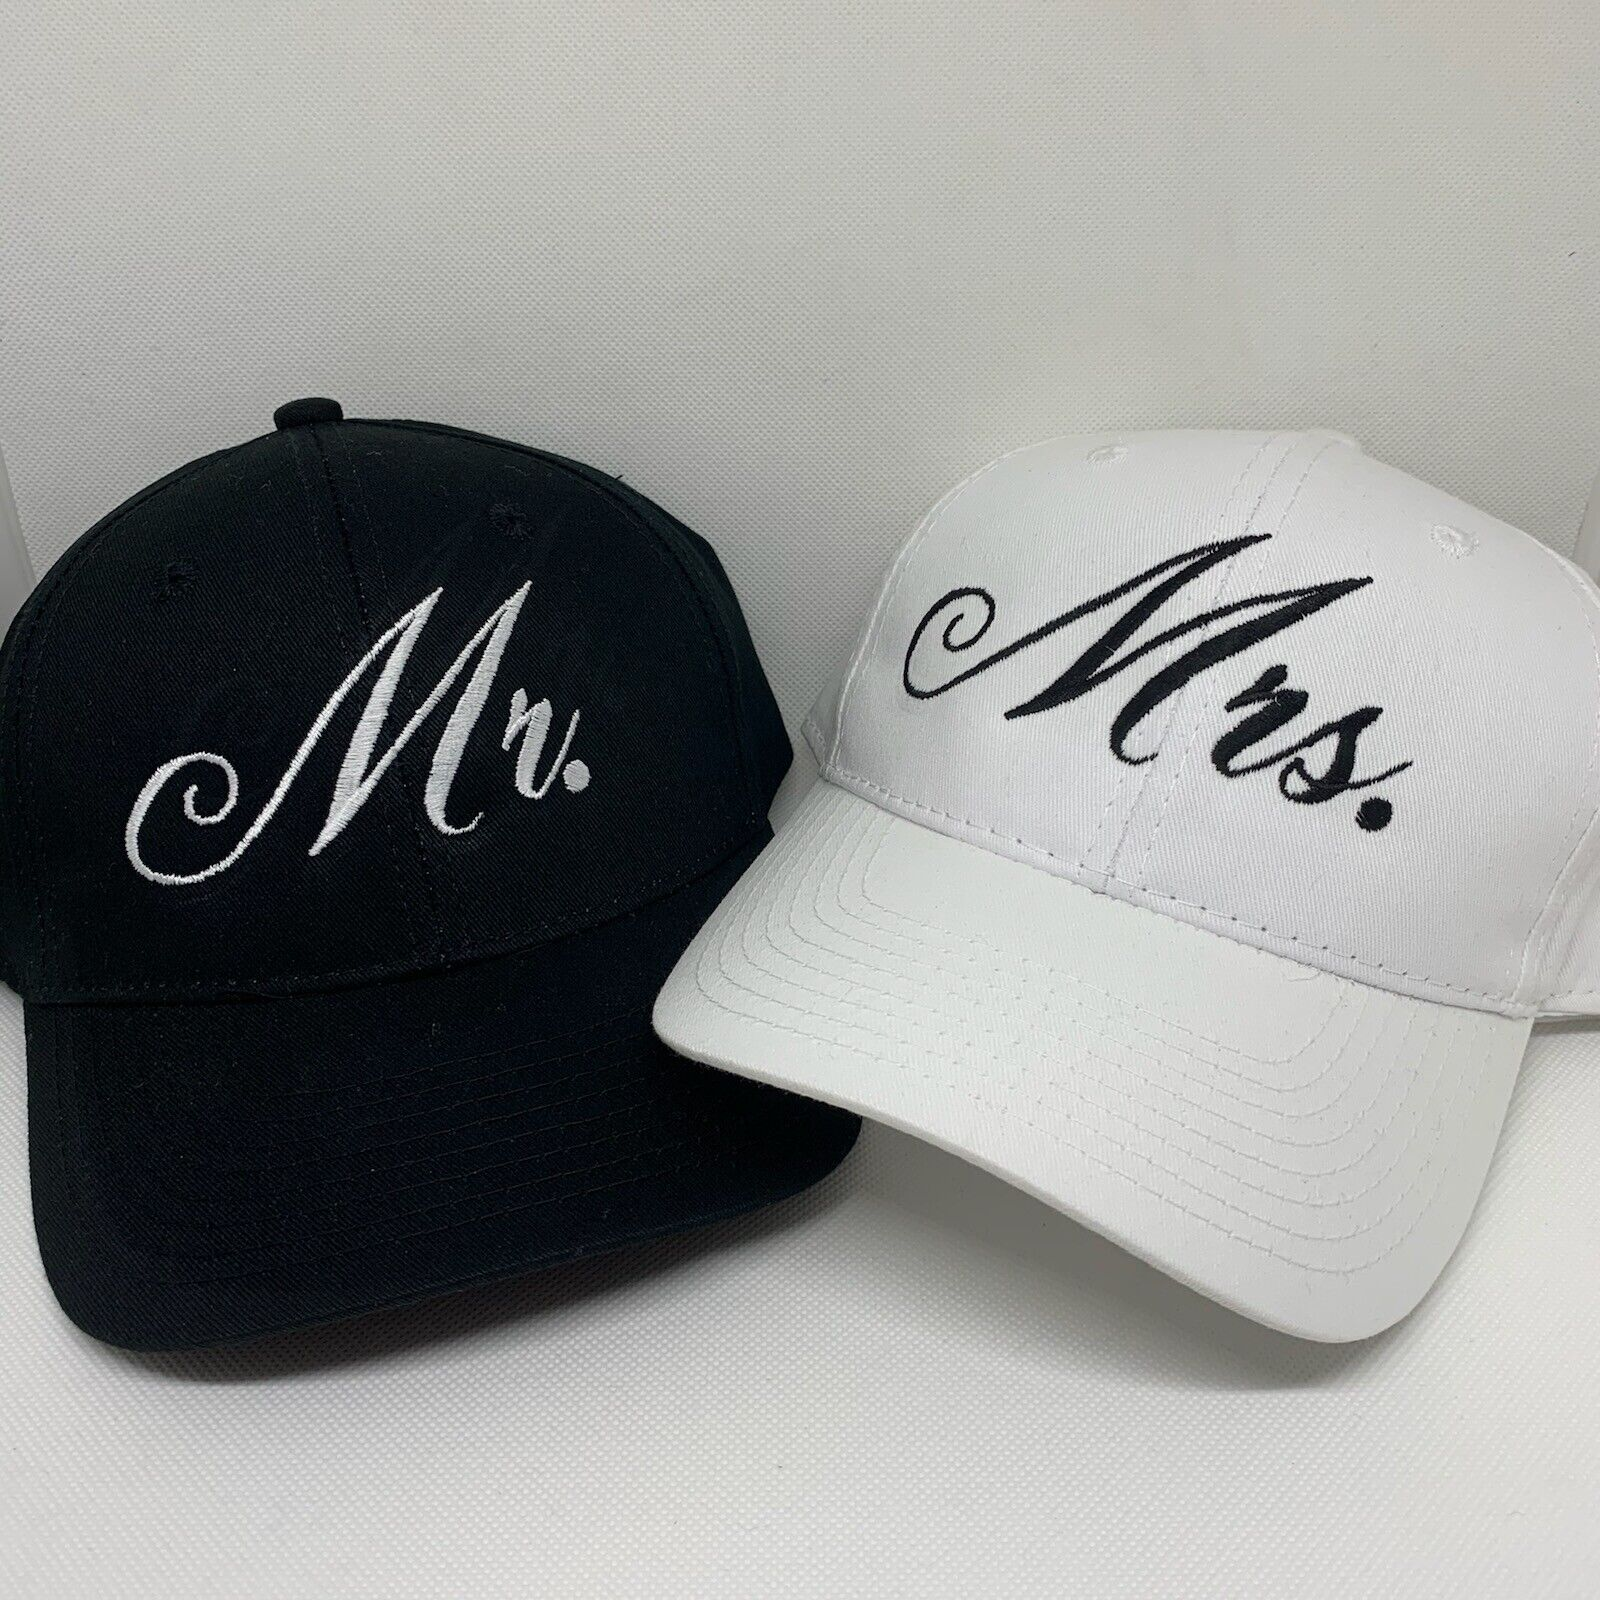 Mr and Mrs Embroidered Hats Wedding hat Bride and Groom Hats